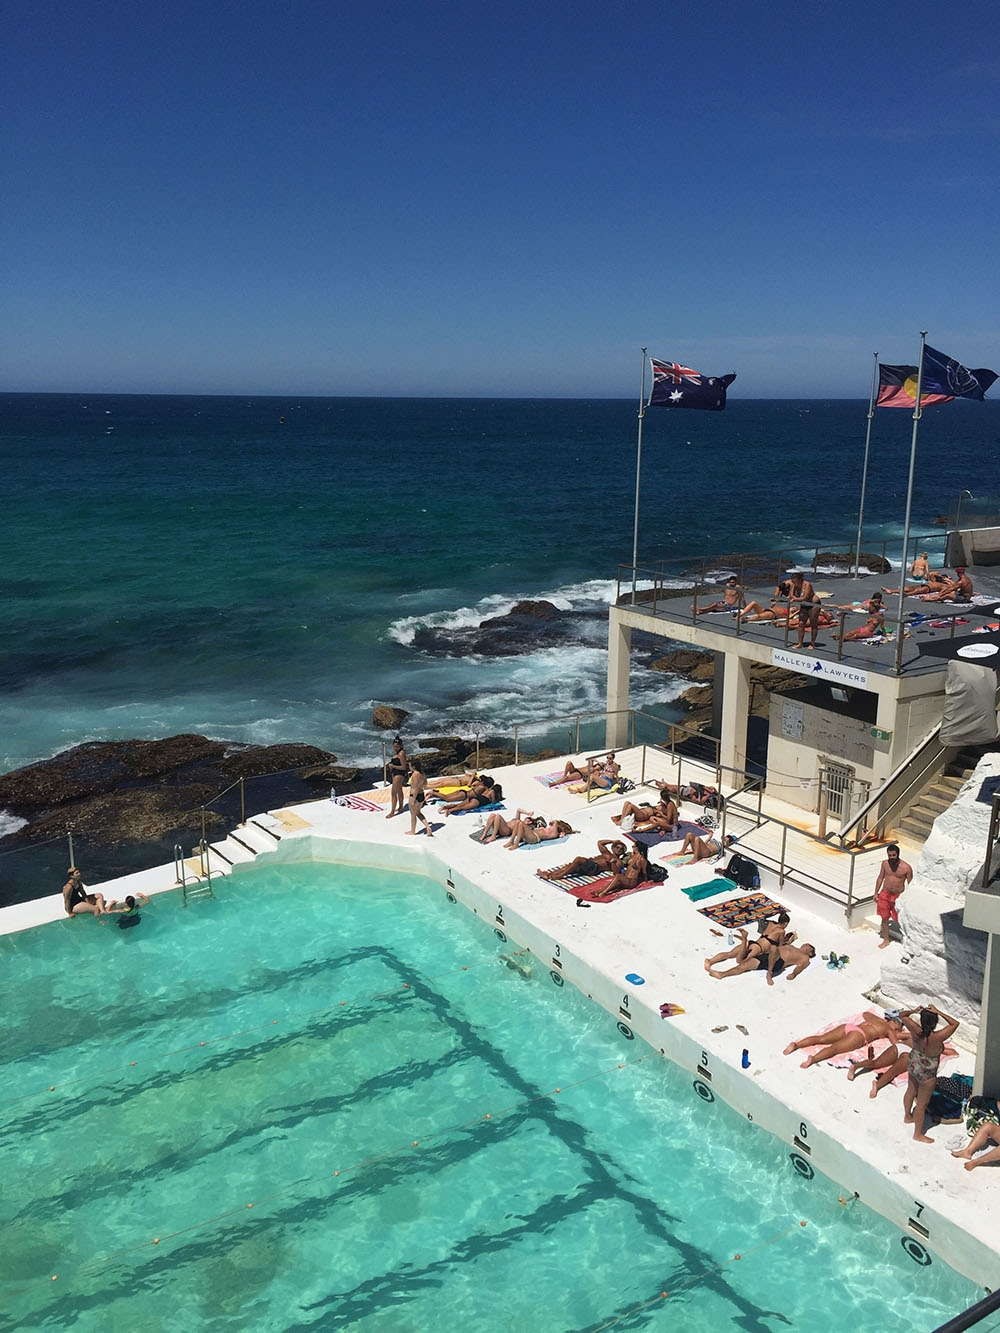 Clear skies, blue water and sunbathers at Bondi Icebergs, April 2016